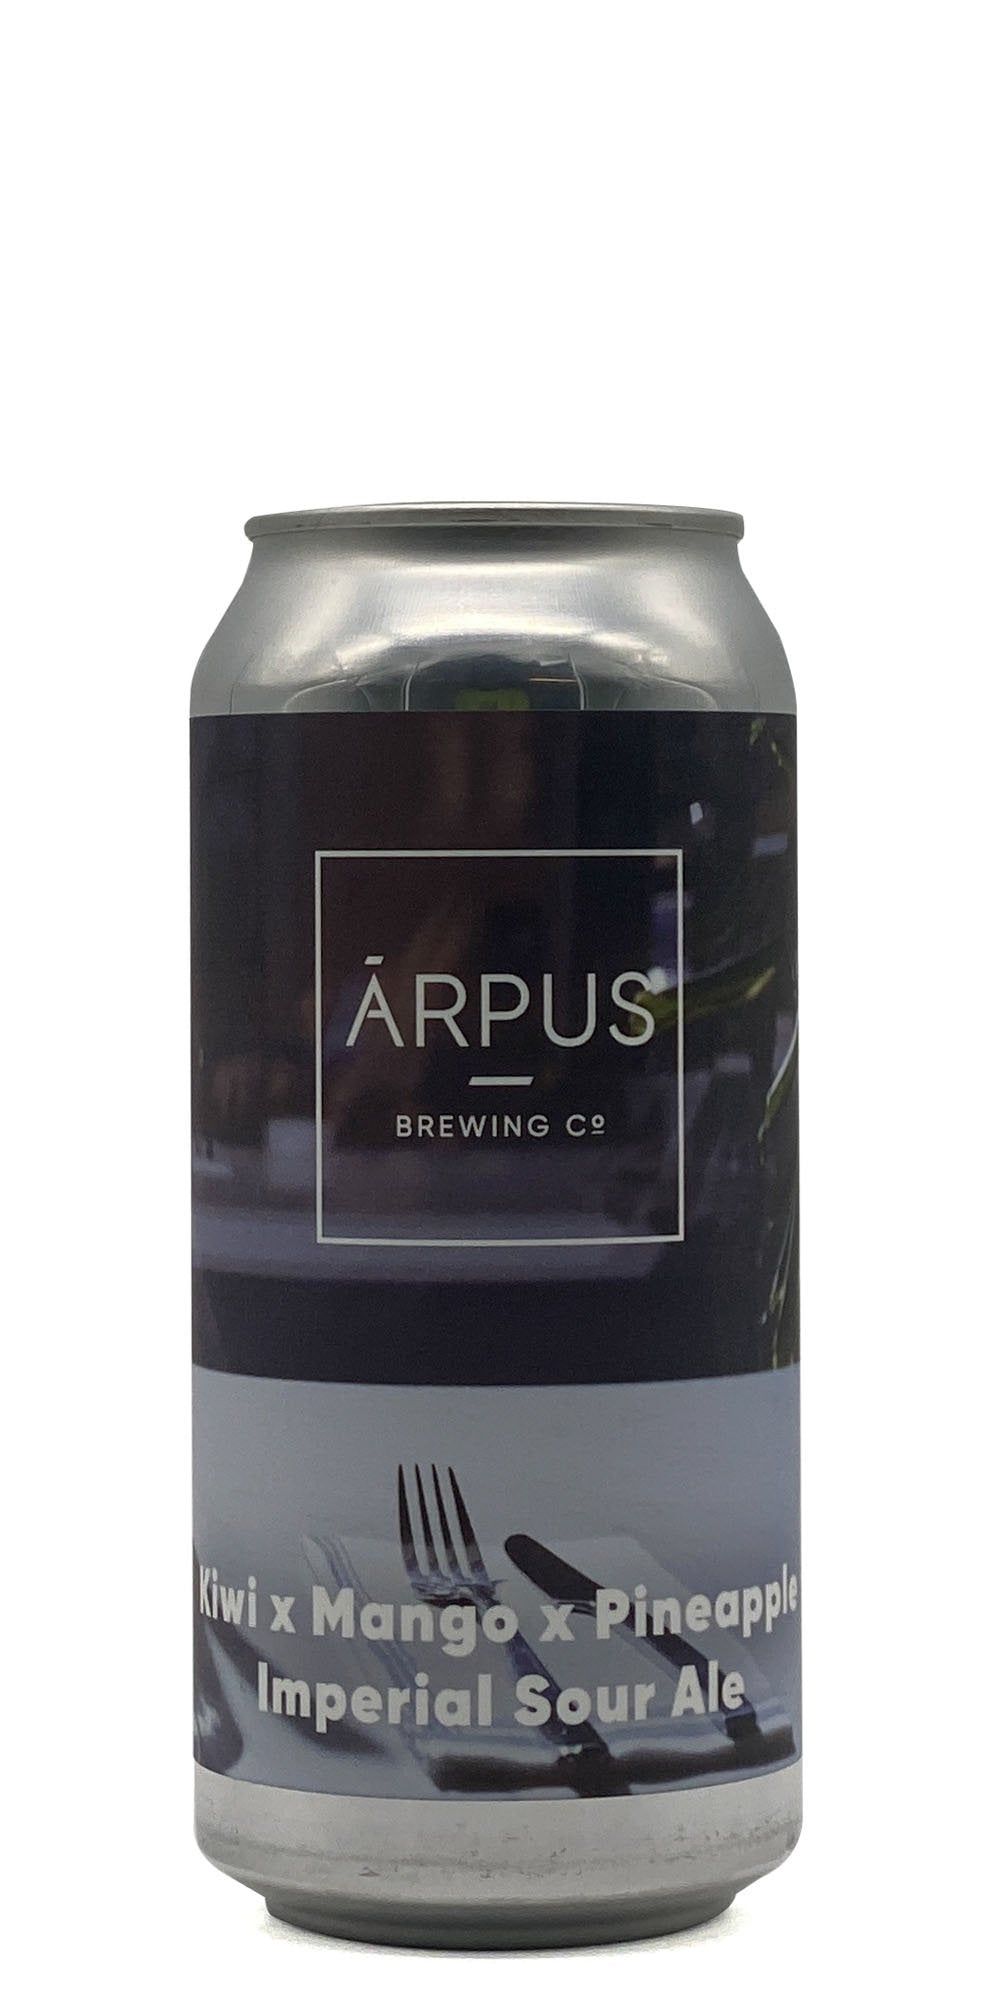 Arpus Brewing Co - Kiwi x Mango x Pineapple Imperial Sour Ale